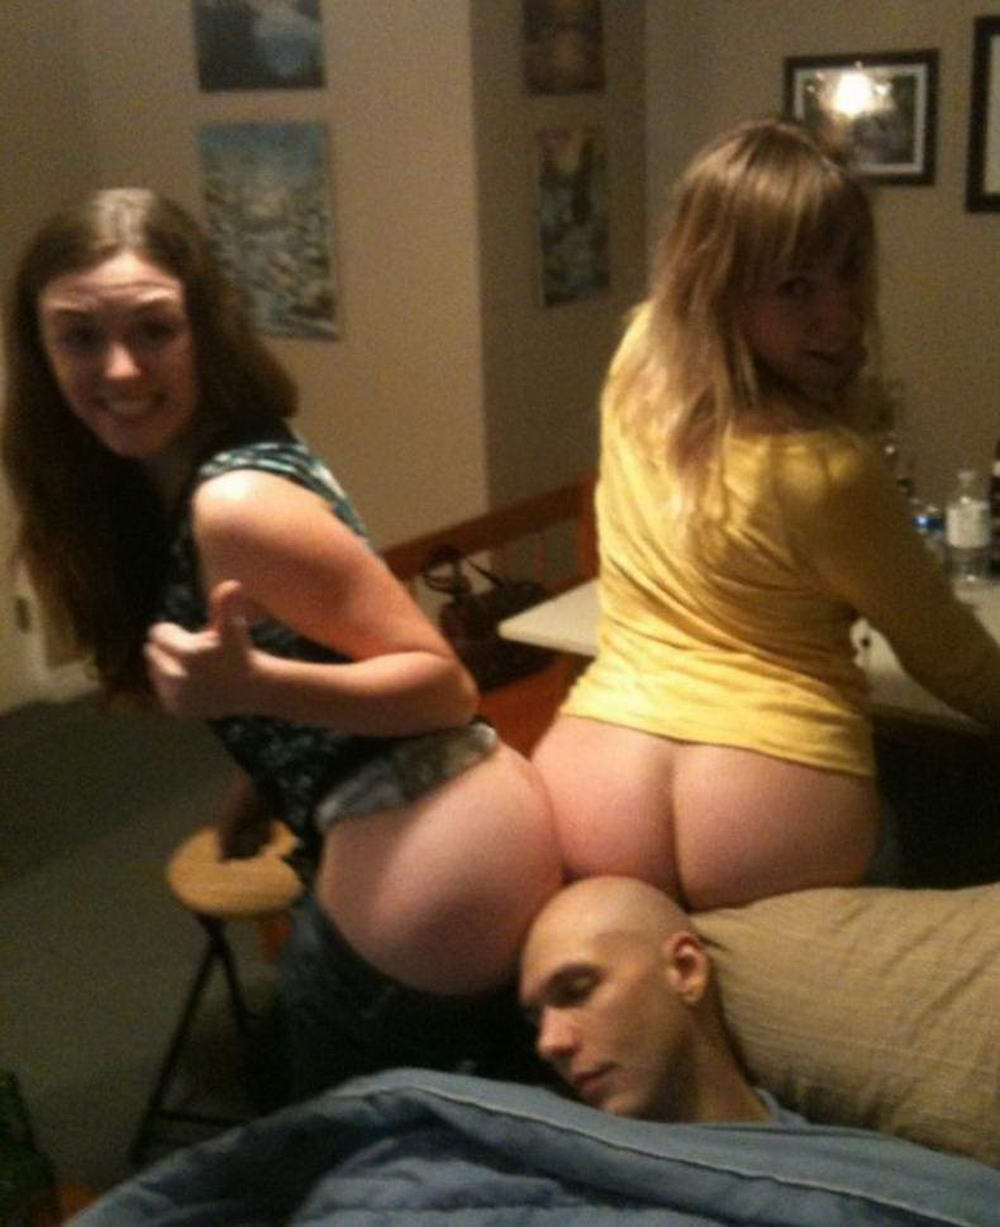 Most Embarrassing Moments Caught On Camera (38 Photos)